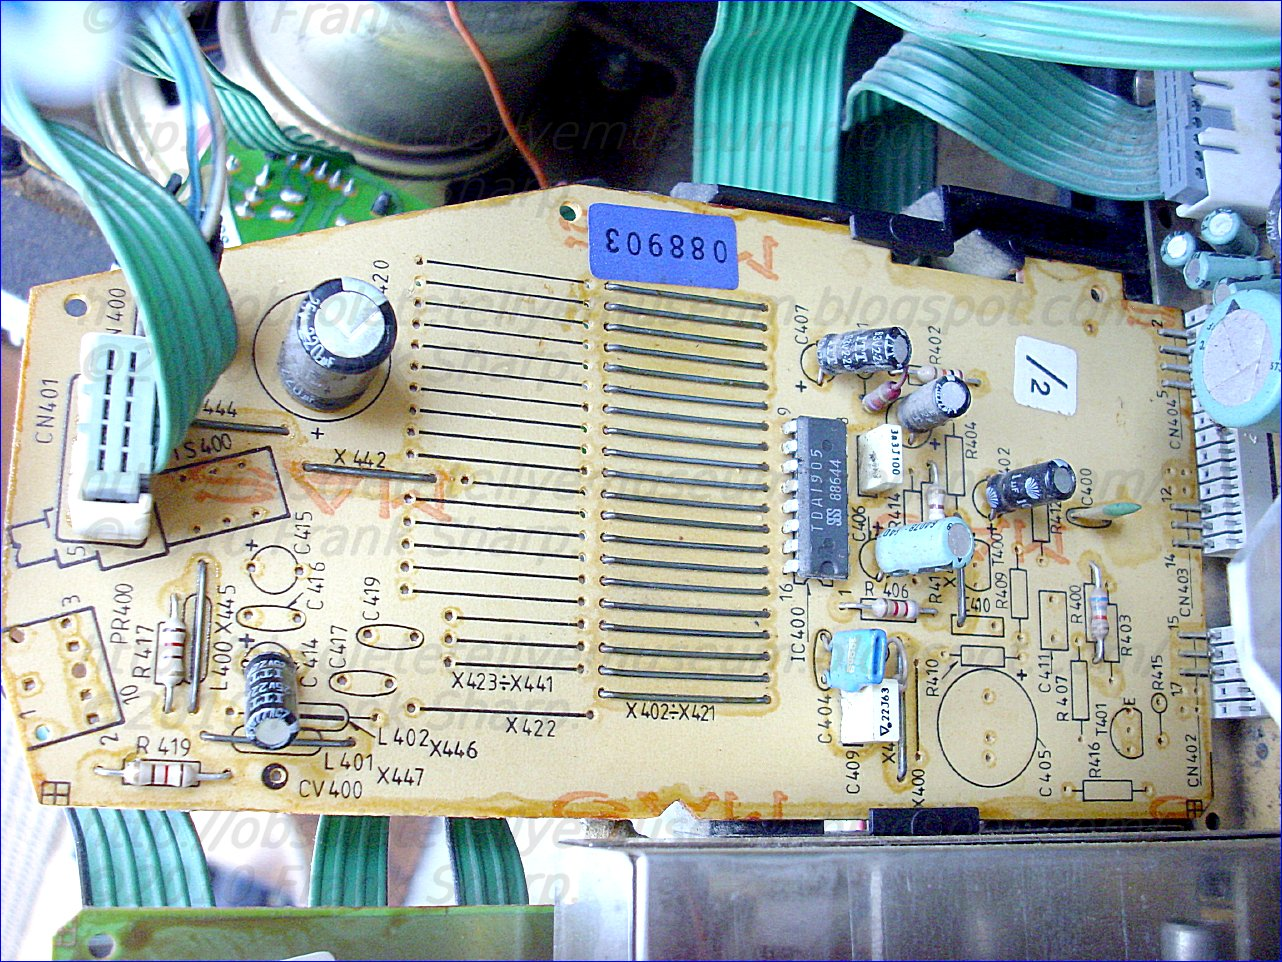 Obsolete Technology Tellye October 2011 Besides 50 Gfci Breaker Wiring Diagram Furthermore Hot Tub 220 Italian Awesome Capability To Fit All Things In A Small Space